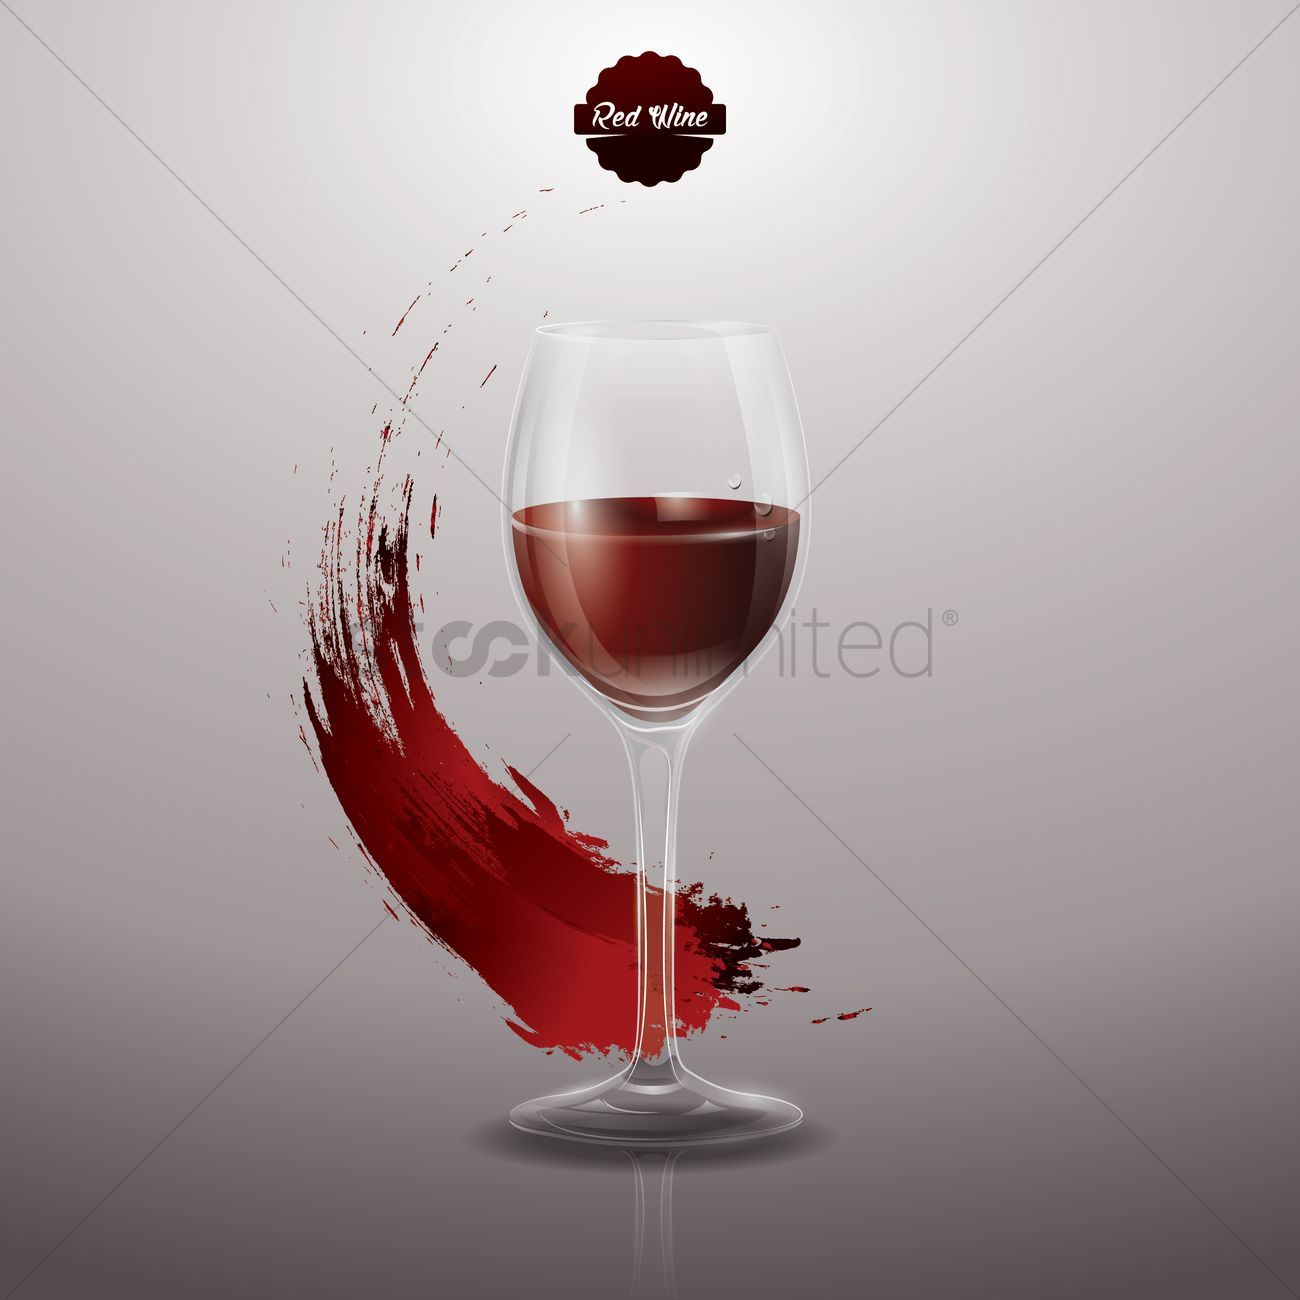 Red wine poster Vector Image - 1519896 | StockUnlimited